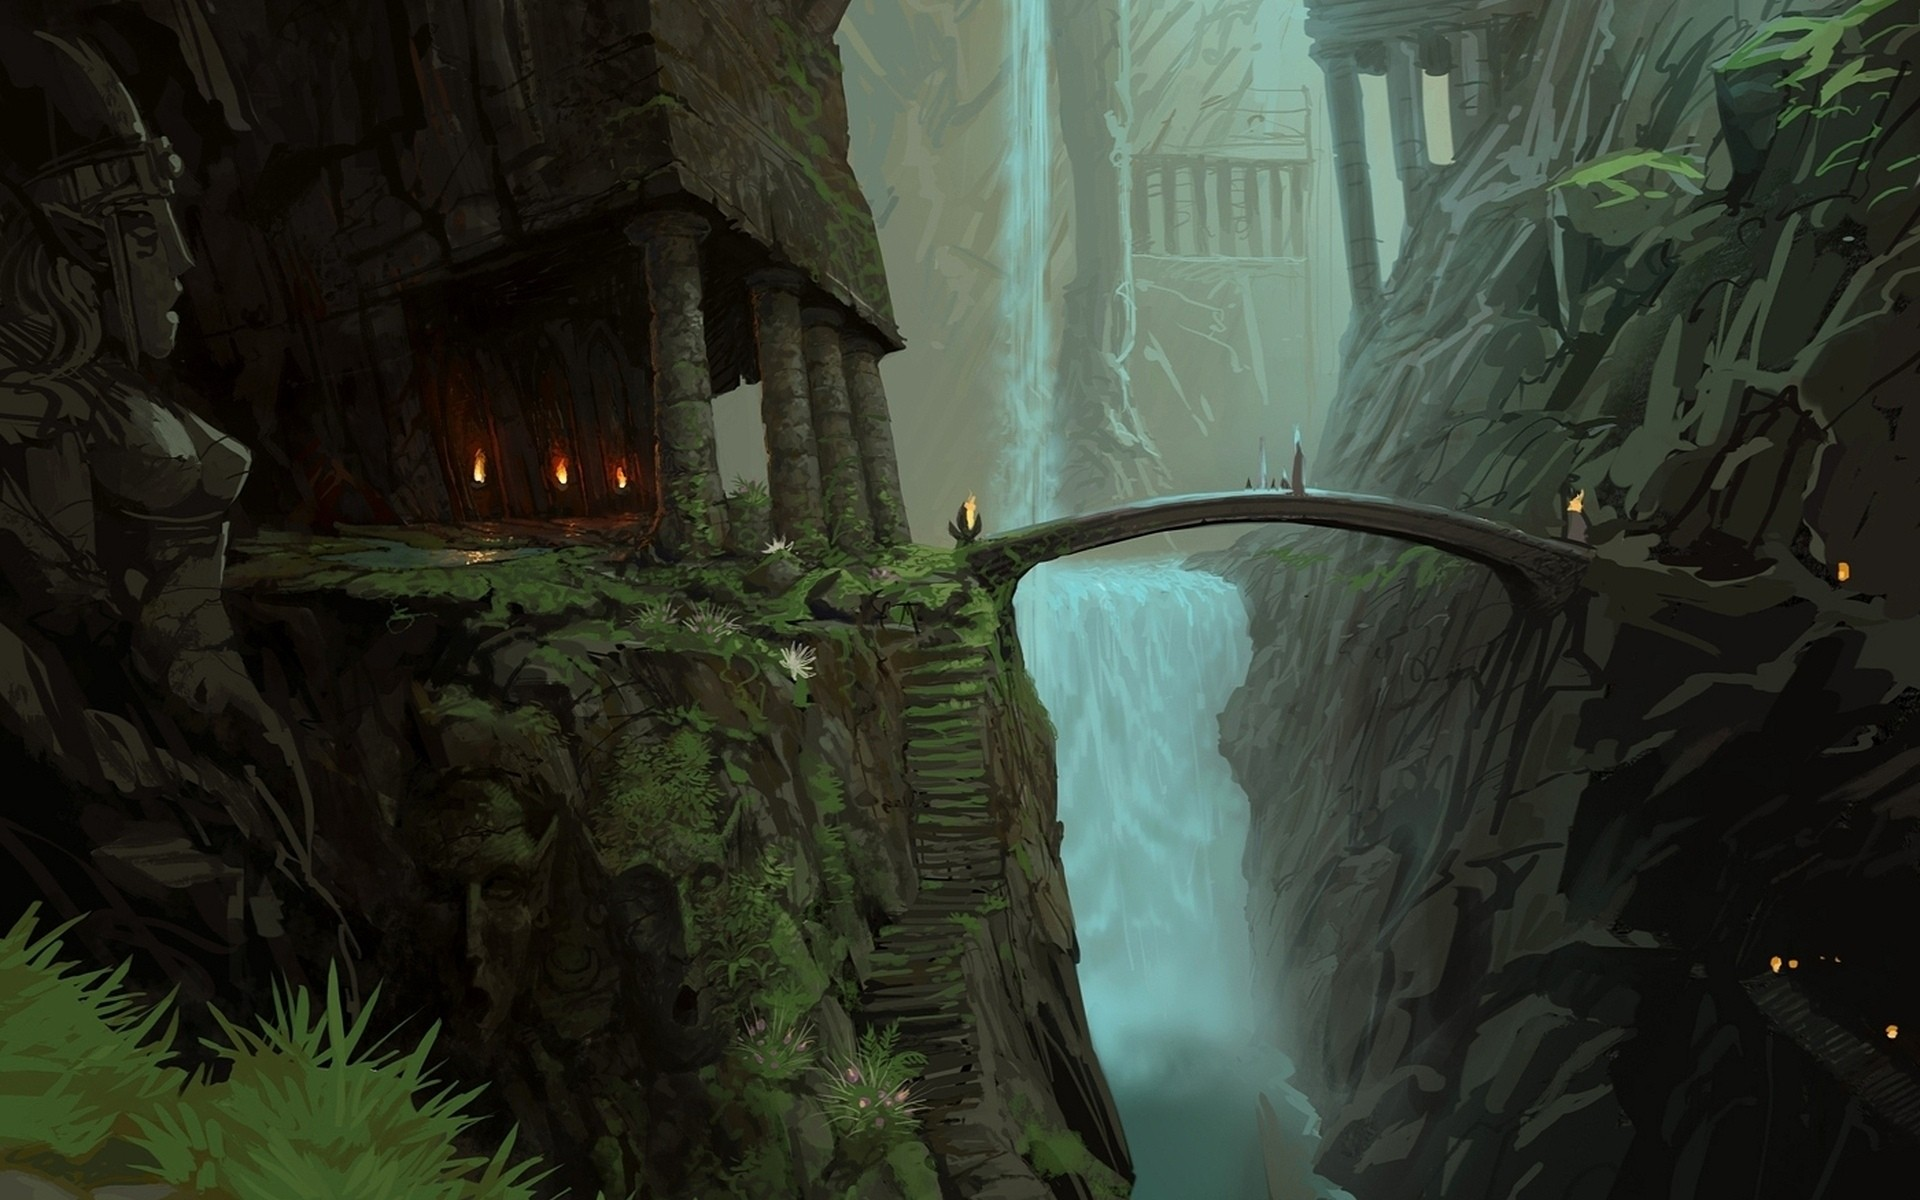 nature, rocks, bridges, The Lord of the Rings, fantasy art, statues ...